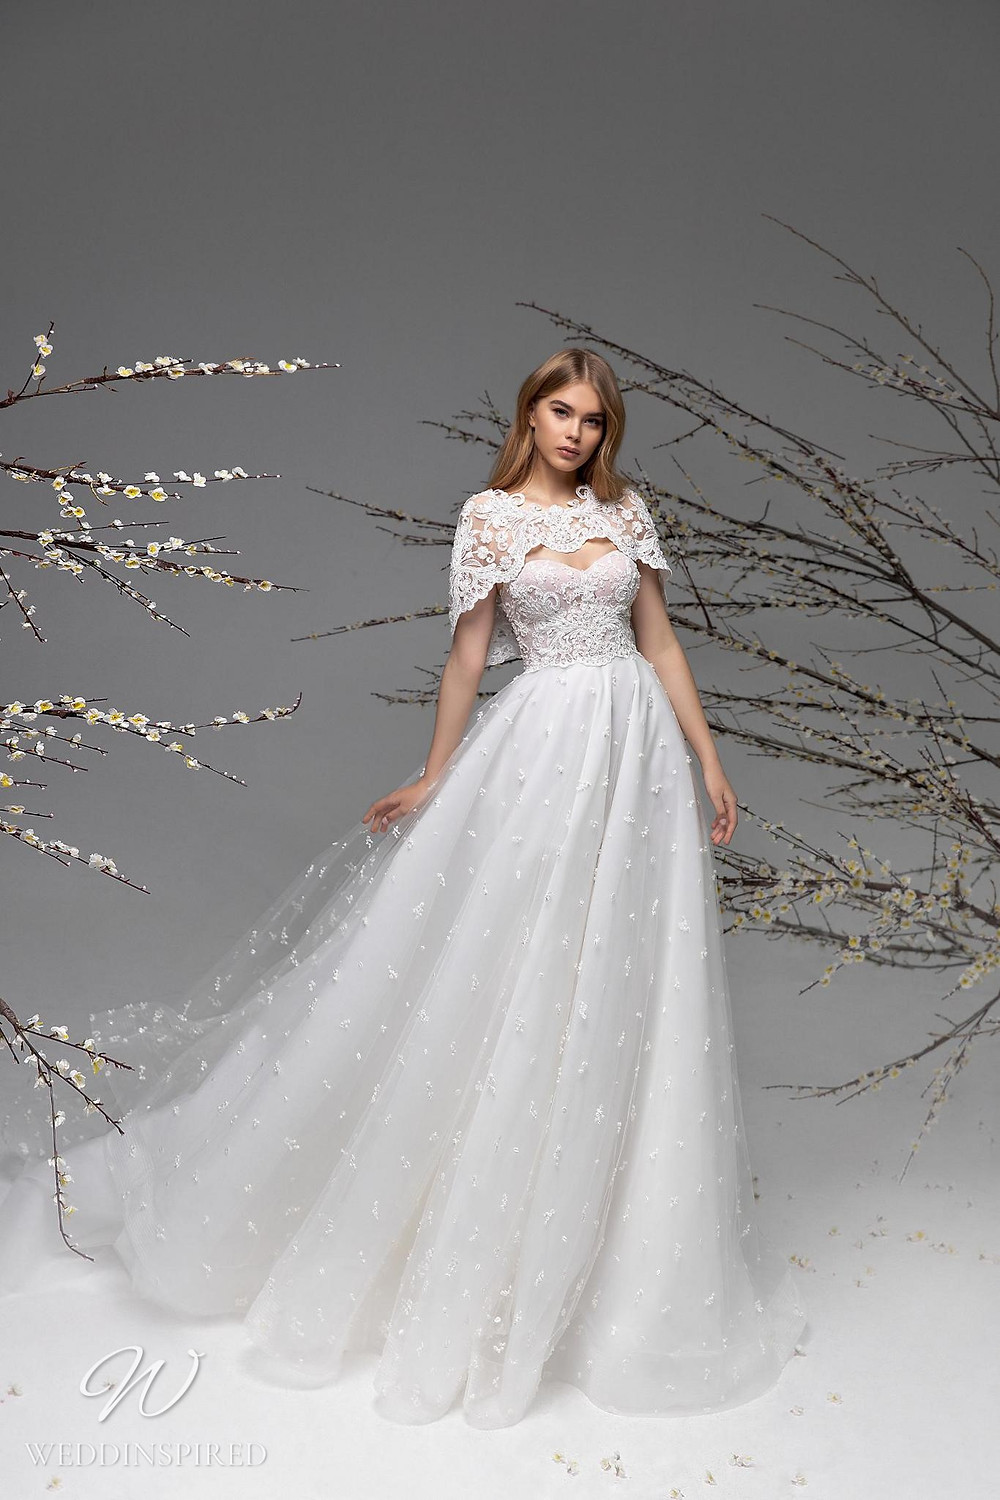 A Ricca Sposa lace and tulle A-line wedding dress with a bolero jacket